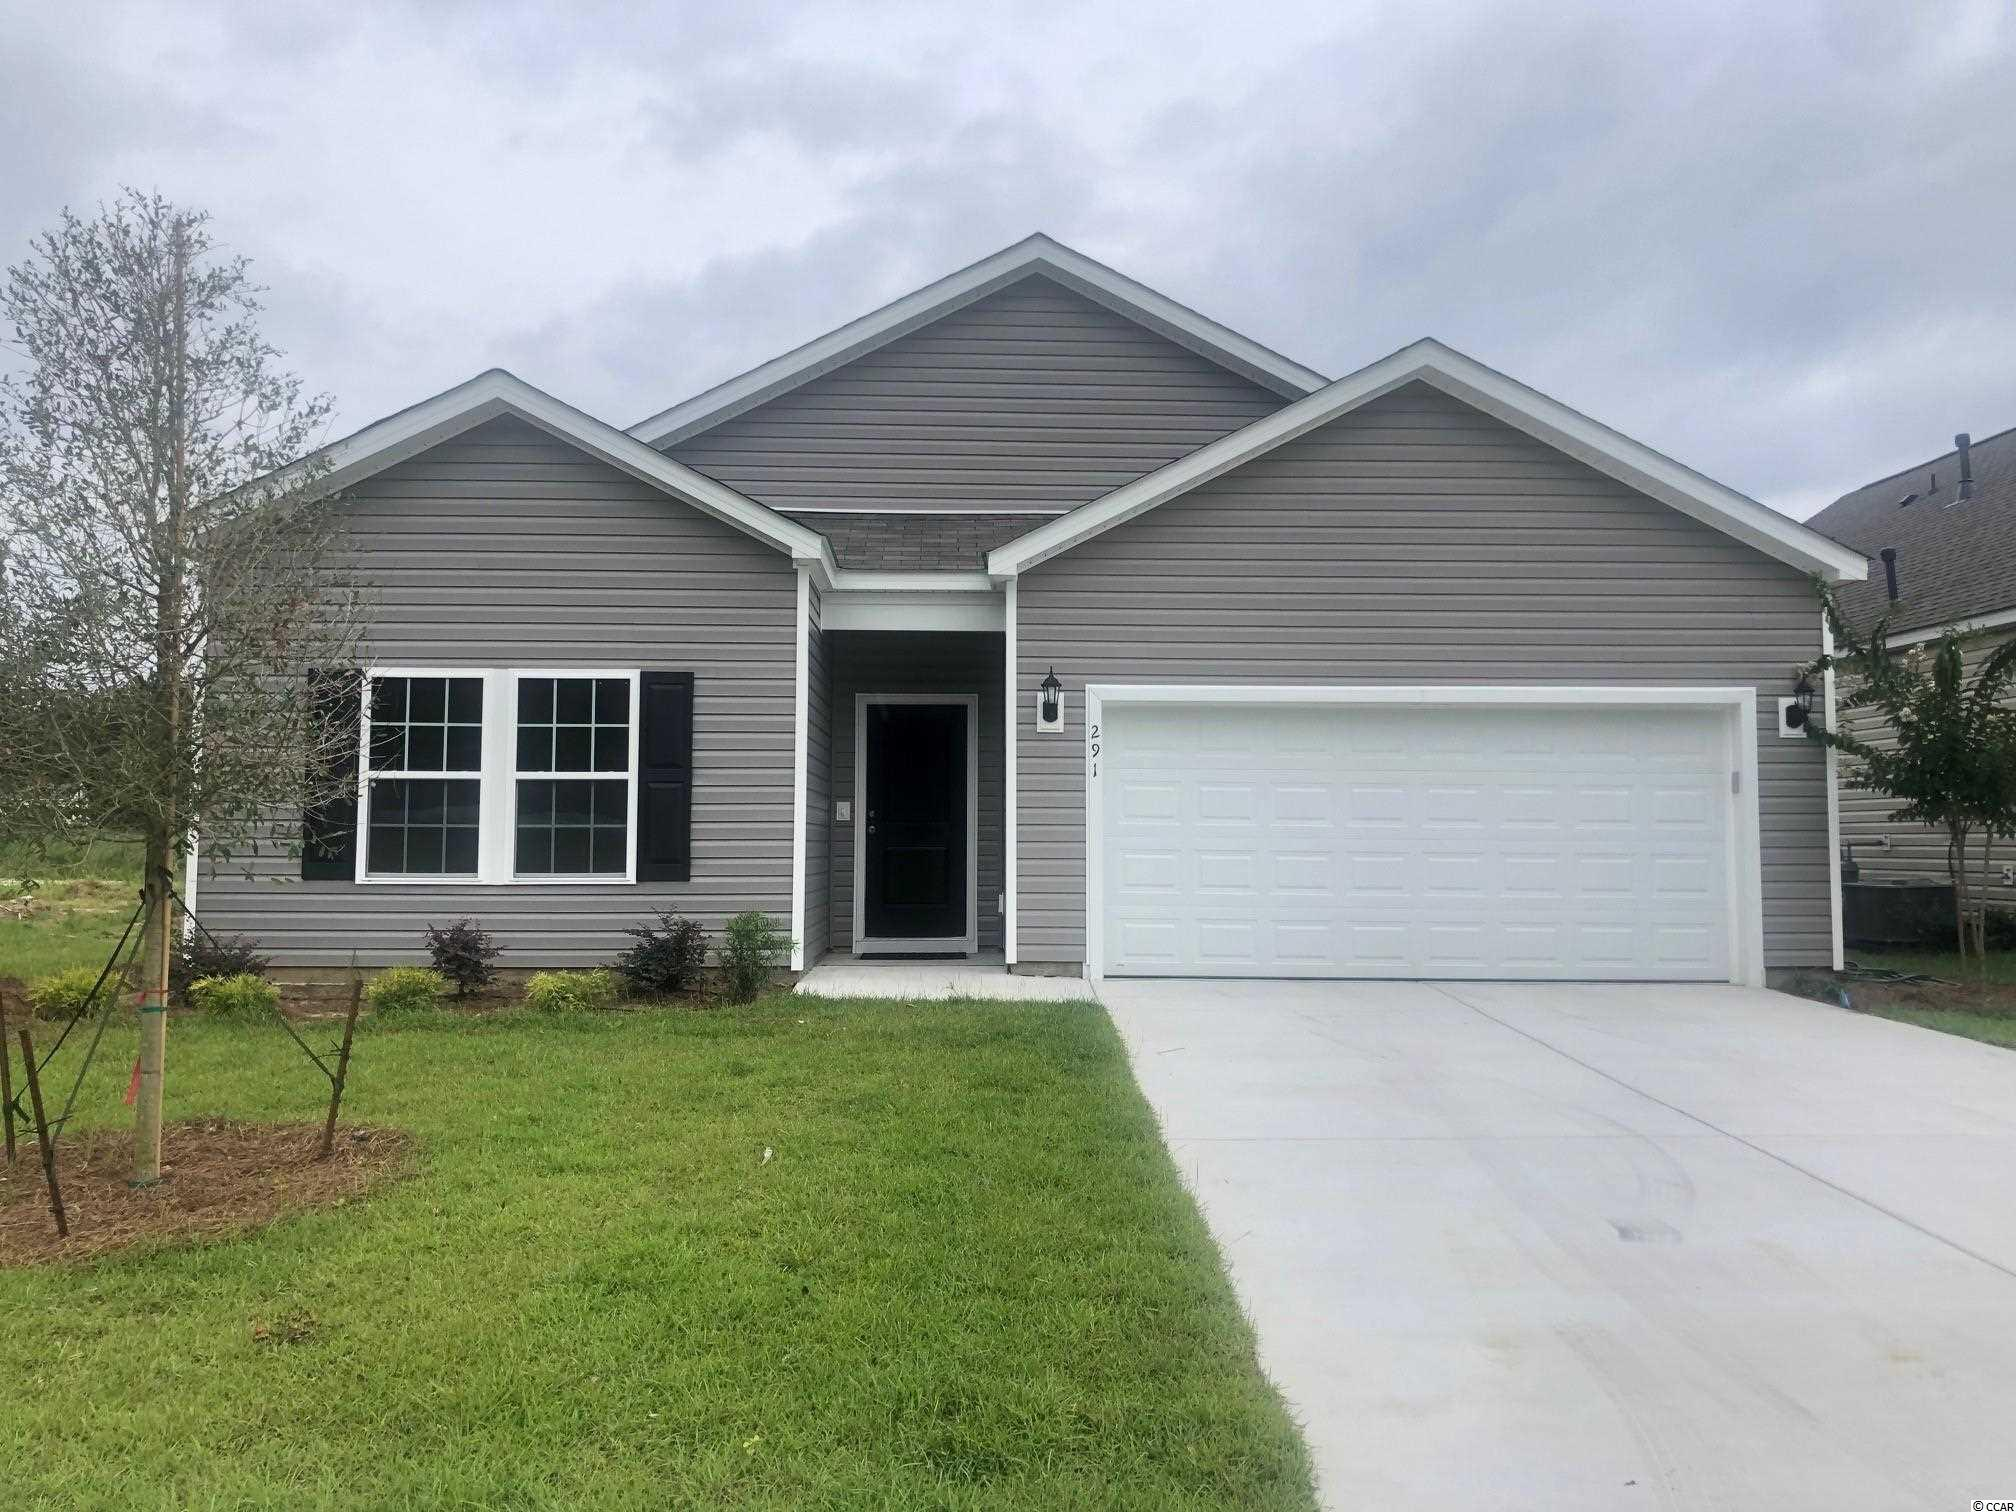 This home is sold, can build similar. Stop by our Sales Center for details.  Hampton Park is a natural Gas Community located on 707 near 544. Easy access to 31 as well! Great location! We are located minutes from beaches, shopping, golf, restaurants, medical facilities and more. This is a small 80 home community that will feature lots that view the pond, as well as backyards that have wooded views. Sidewalks and pool.  *Photos are of model home and do not reflect color selections and options of actual unit for sale.*